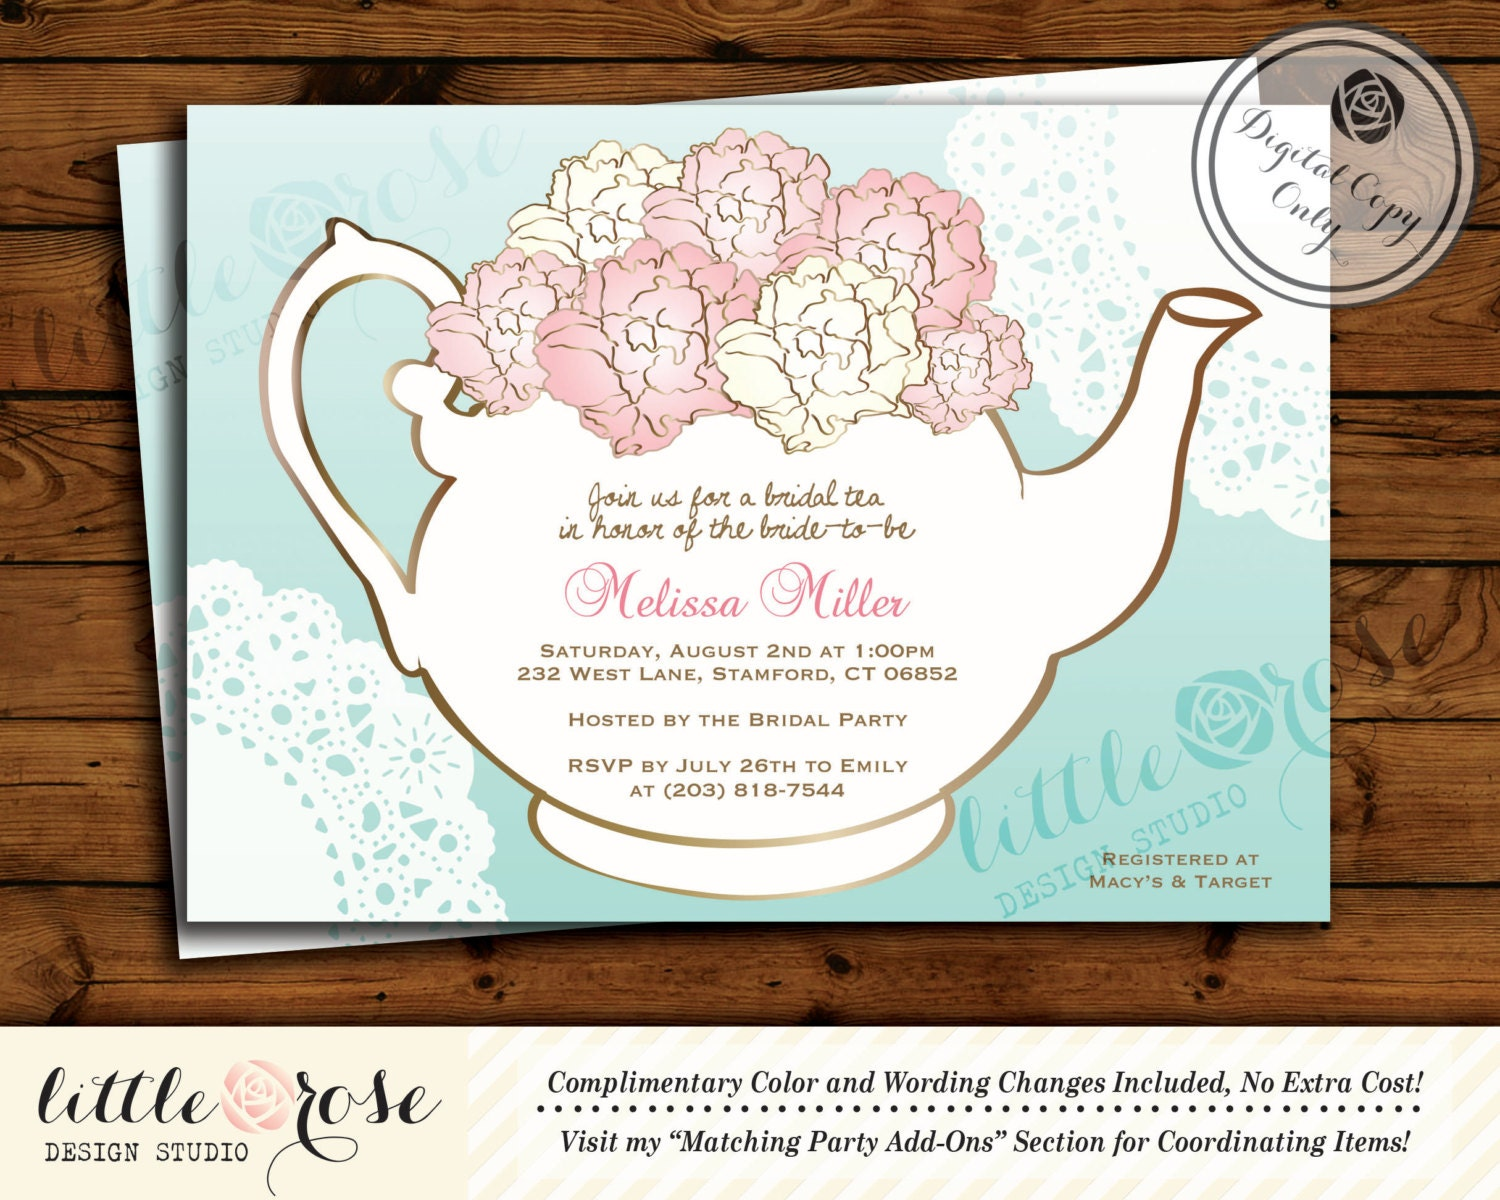 Bridal tea party invitation bridal shower invite baby shower tea bridal tea party invitation bridal shower invite baby shower tea party high tea afternoon tea birthday tea party printable filmwisefo